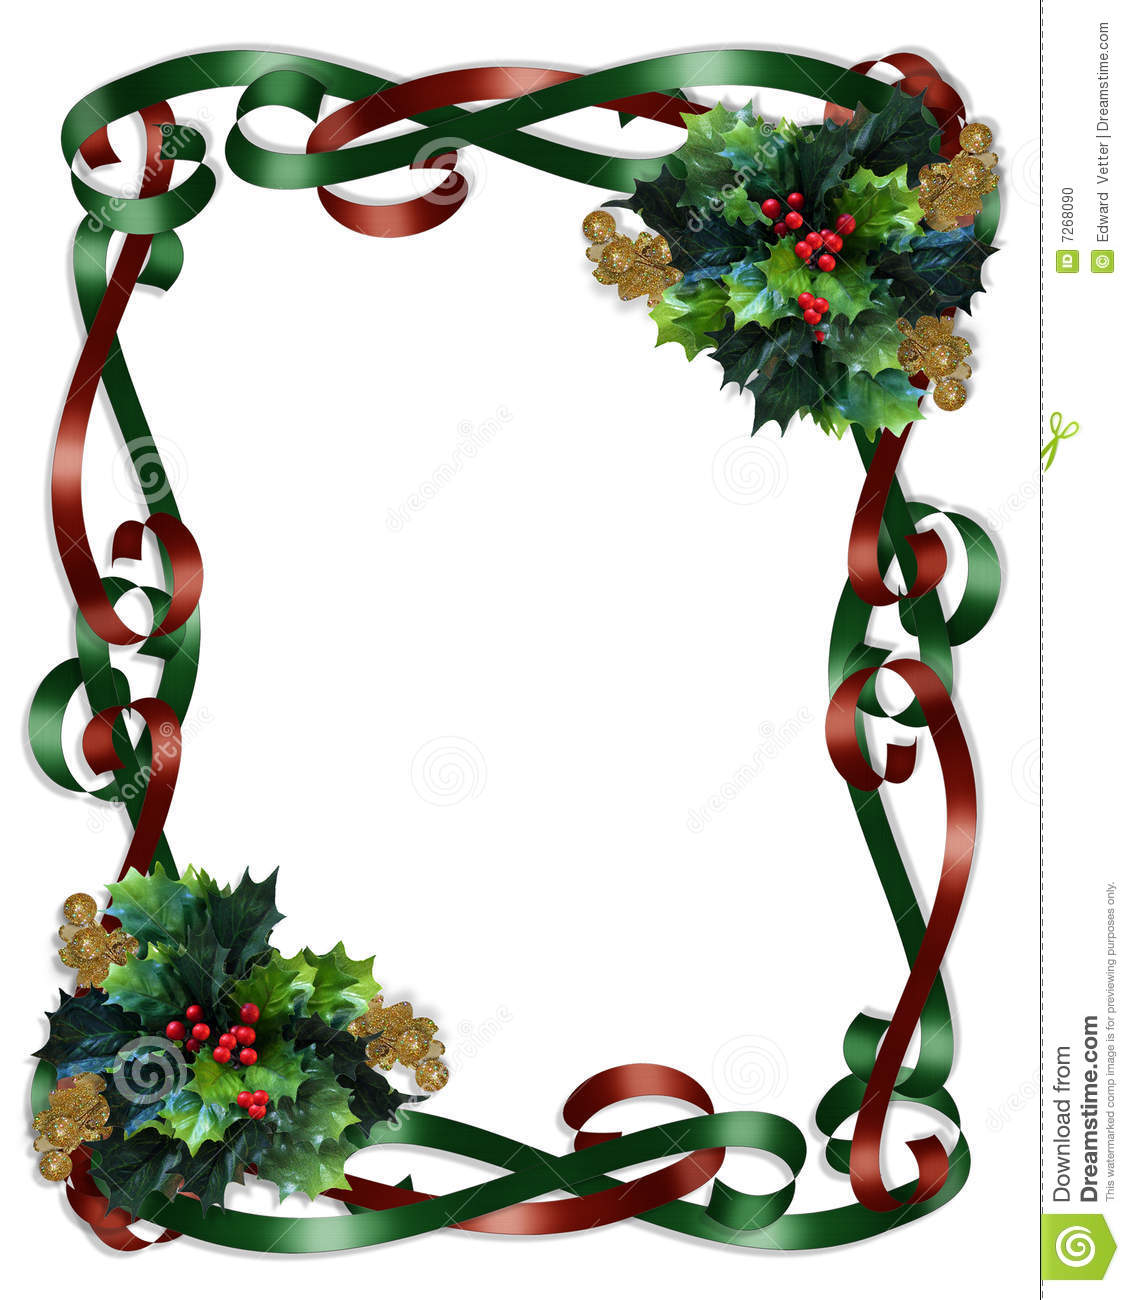 Christmas Ornament Border Clipart - Clipart Kid